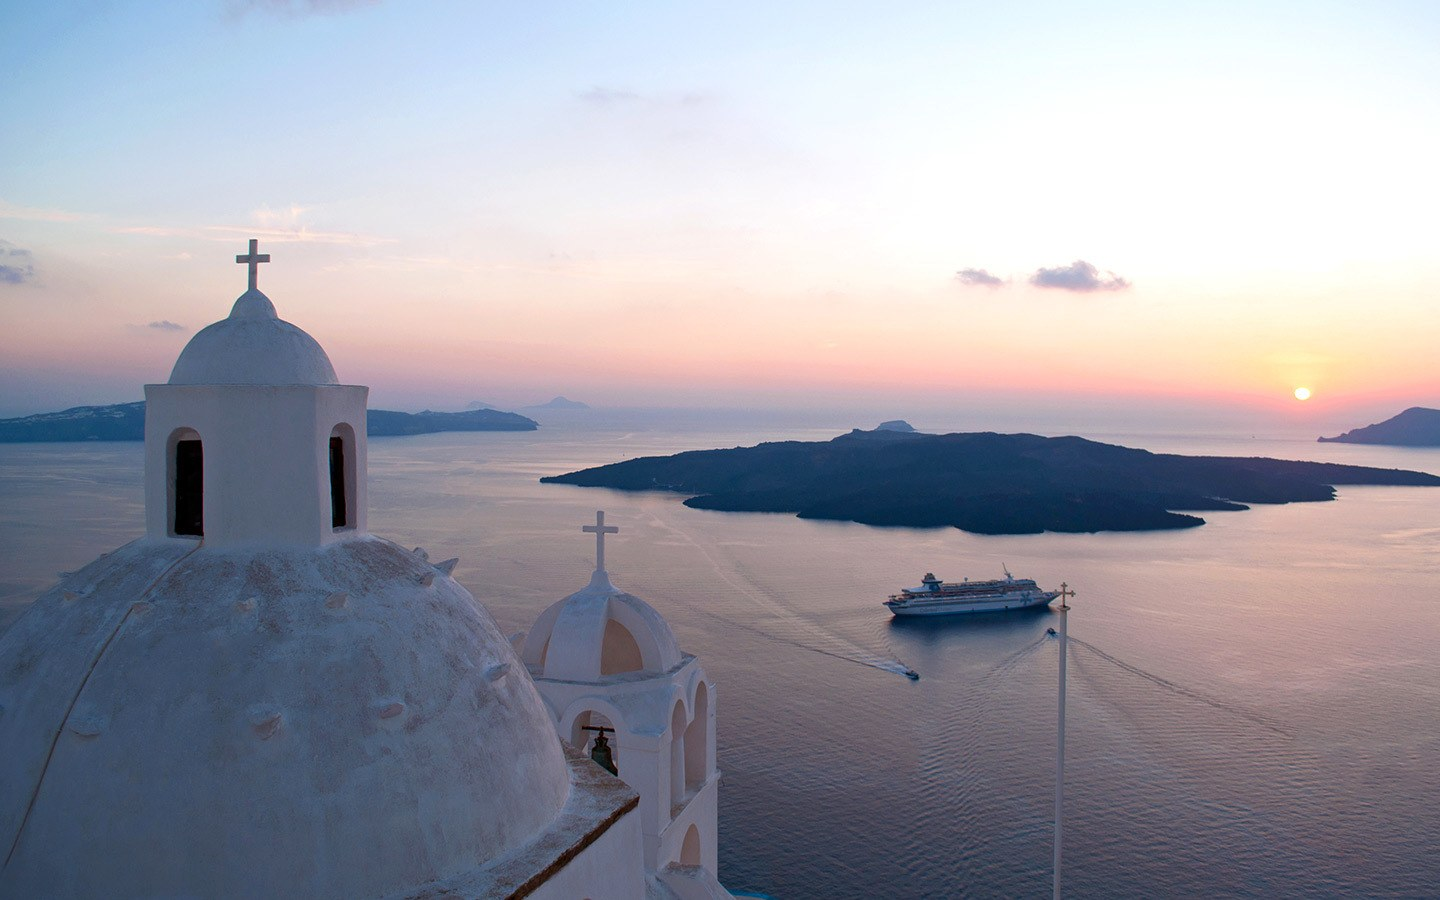 Sunset views, one of the best things to do in Fira Santorini